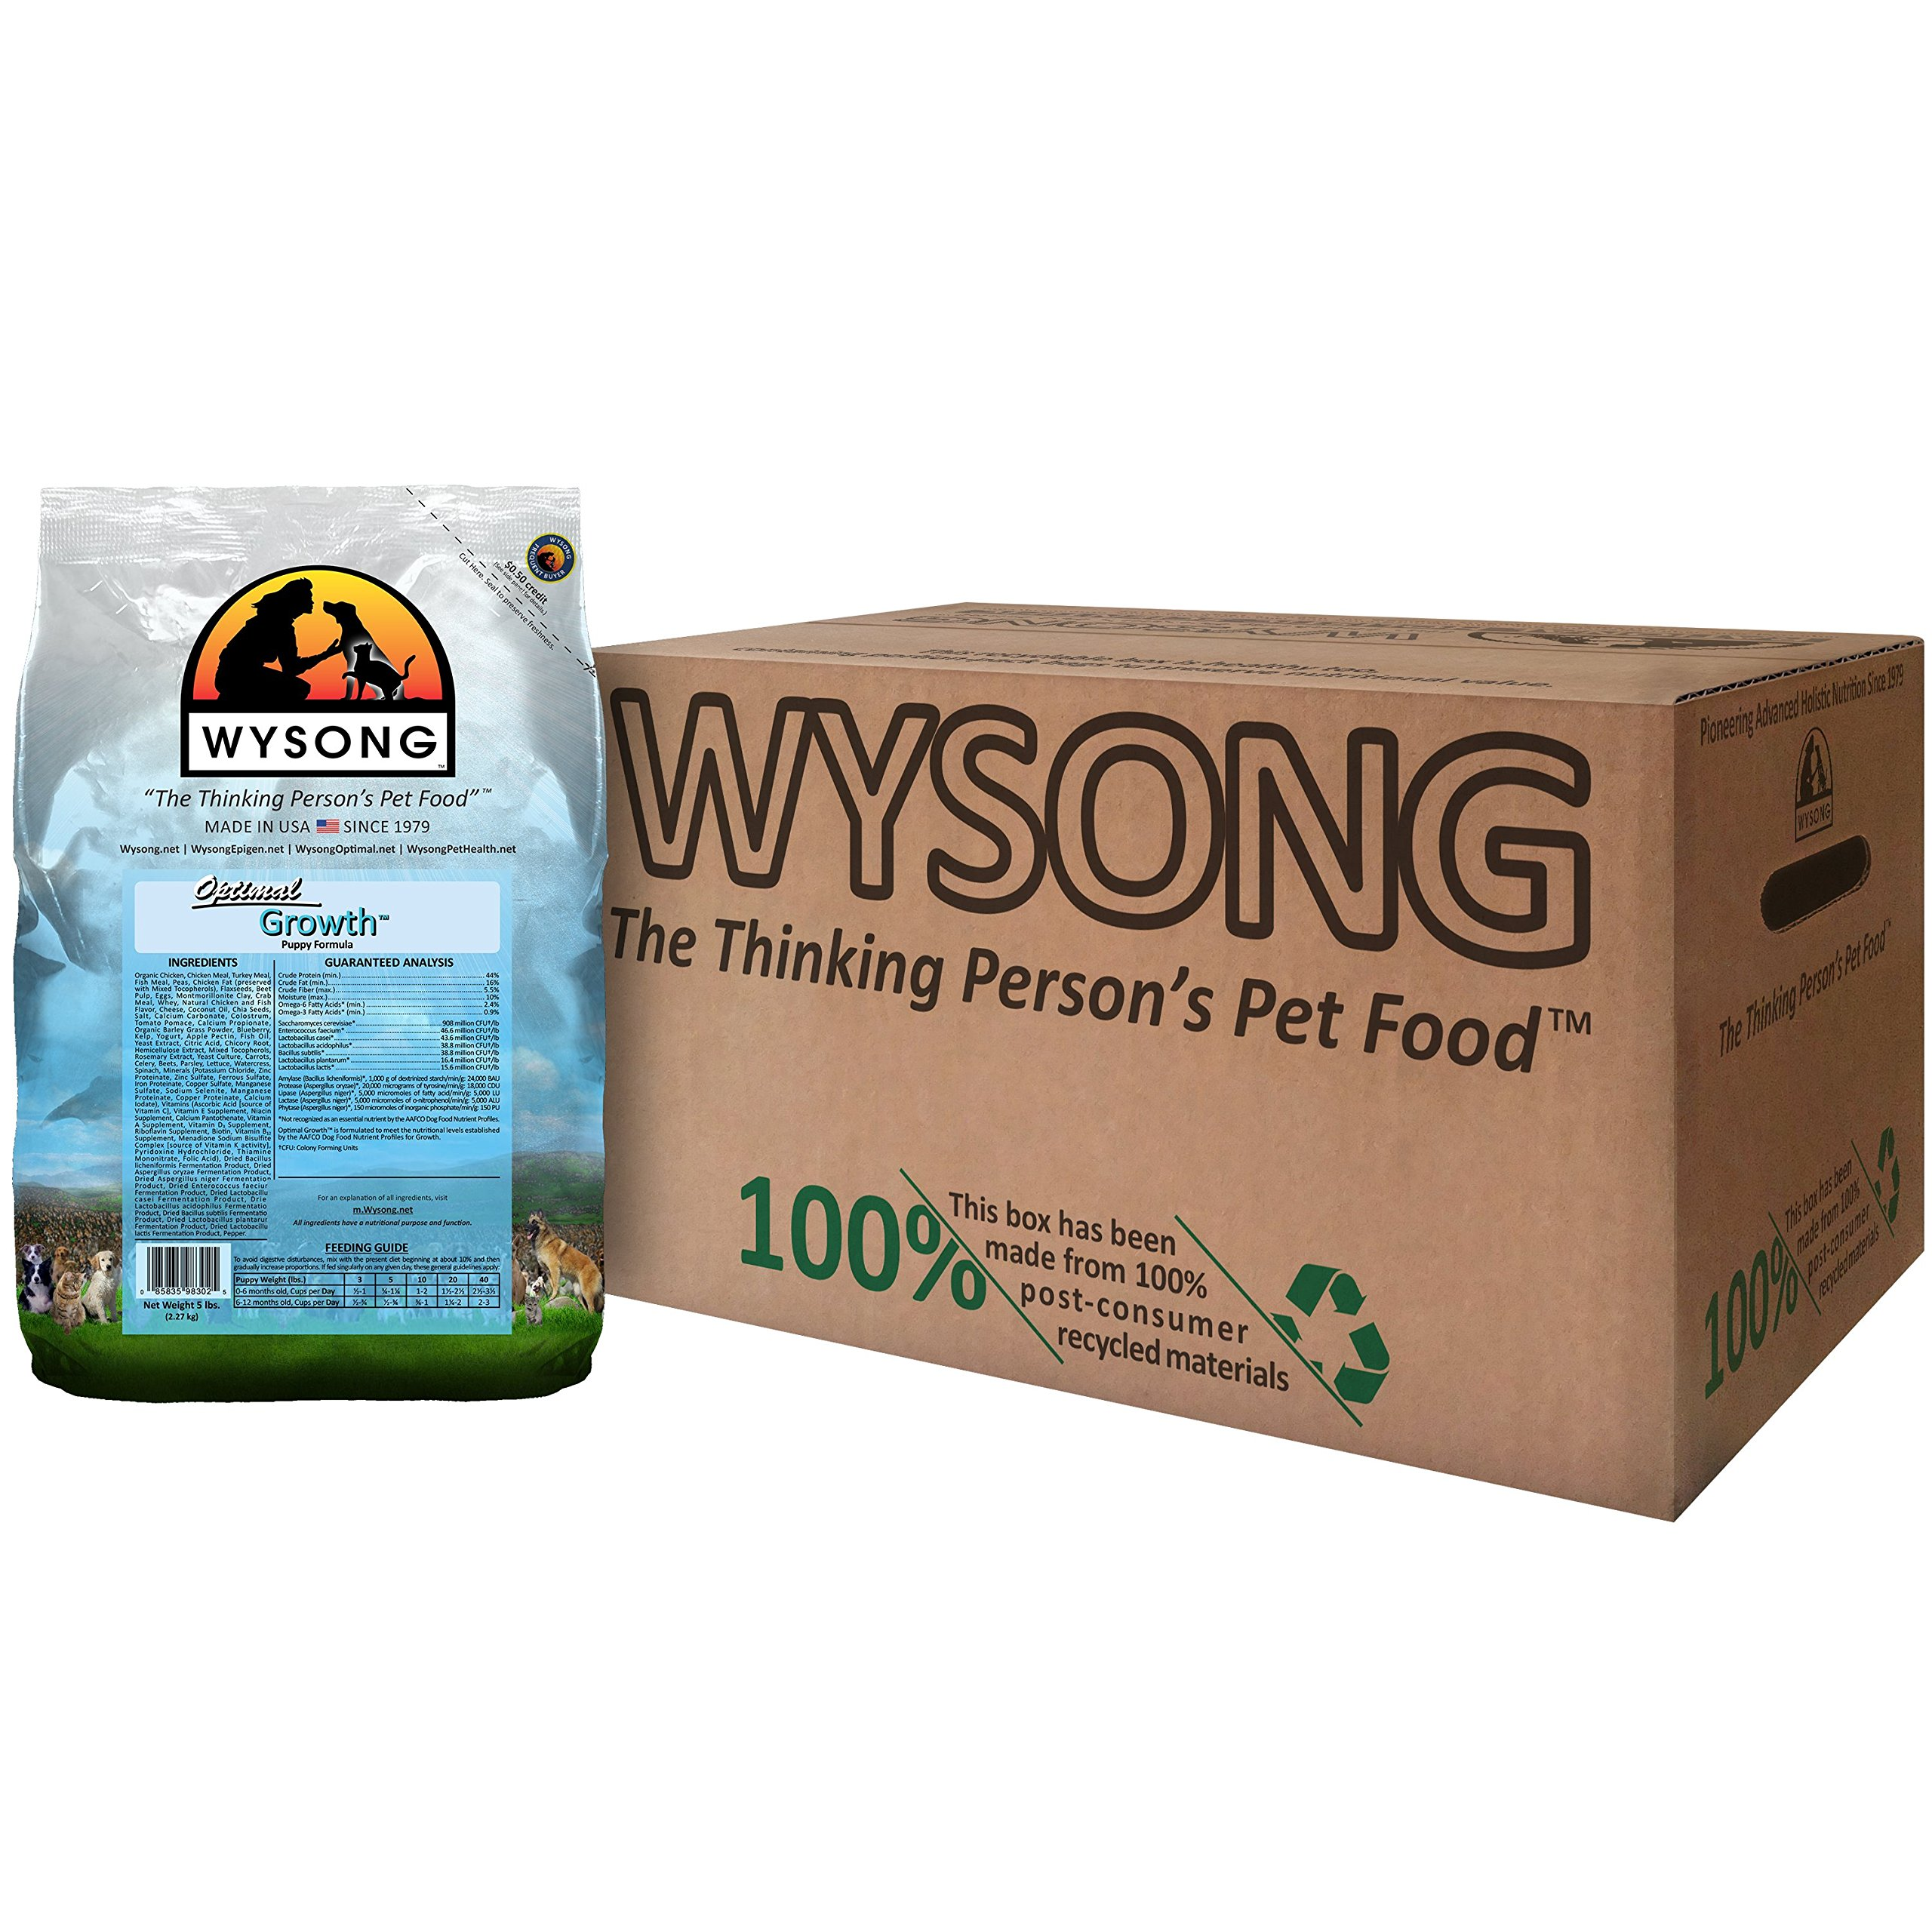 Wysong Optimal Growth Puppy Formula Puppy Food, Four- 5 Pound Bags by WYSONG PET NUTRITIONAL PRODUCTS